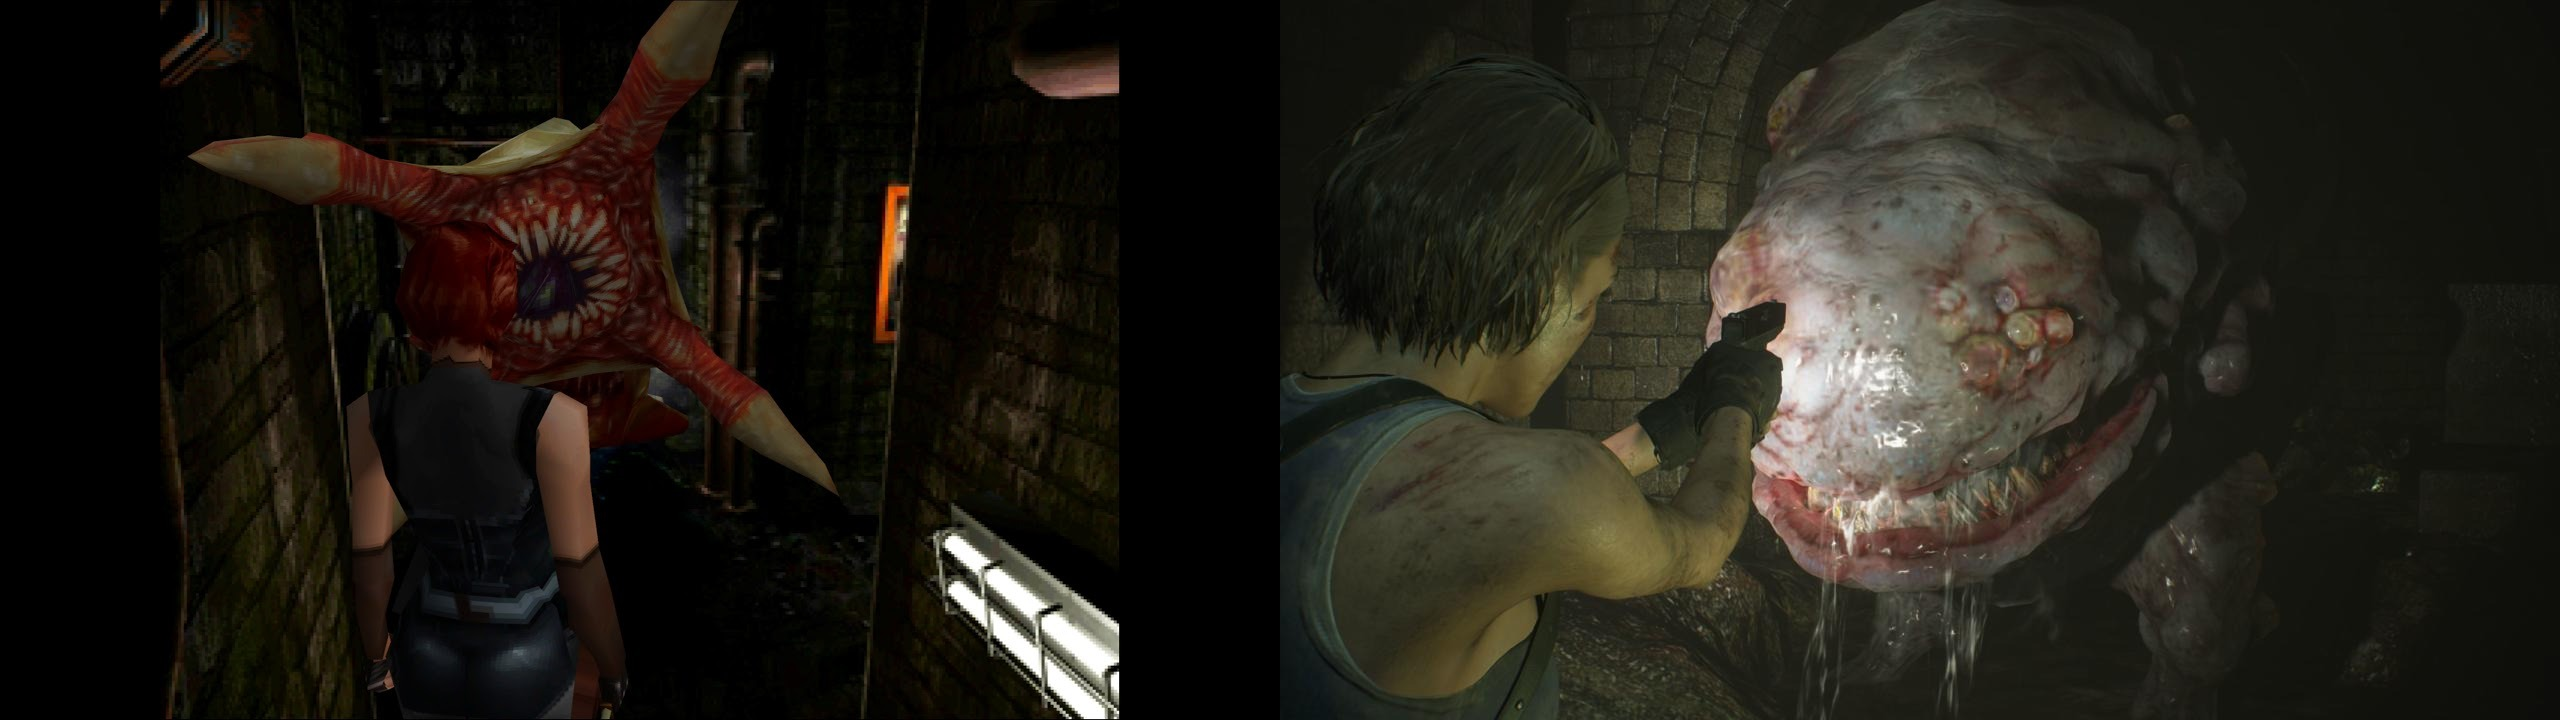 The Grave Digger boss in RE3 class (left), and the Hunter Gamma in RE3 remake.